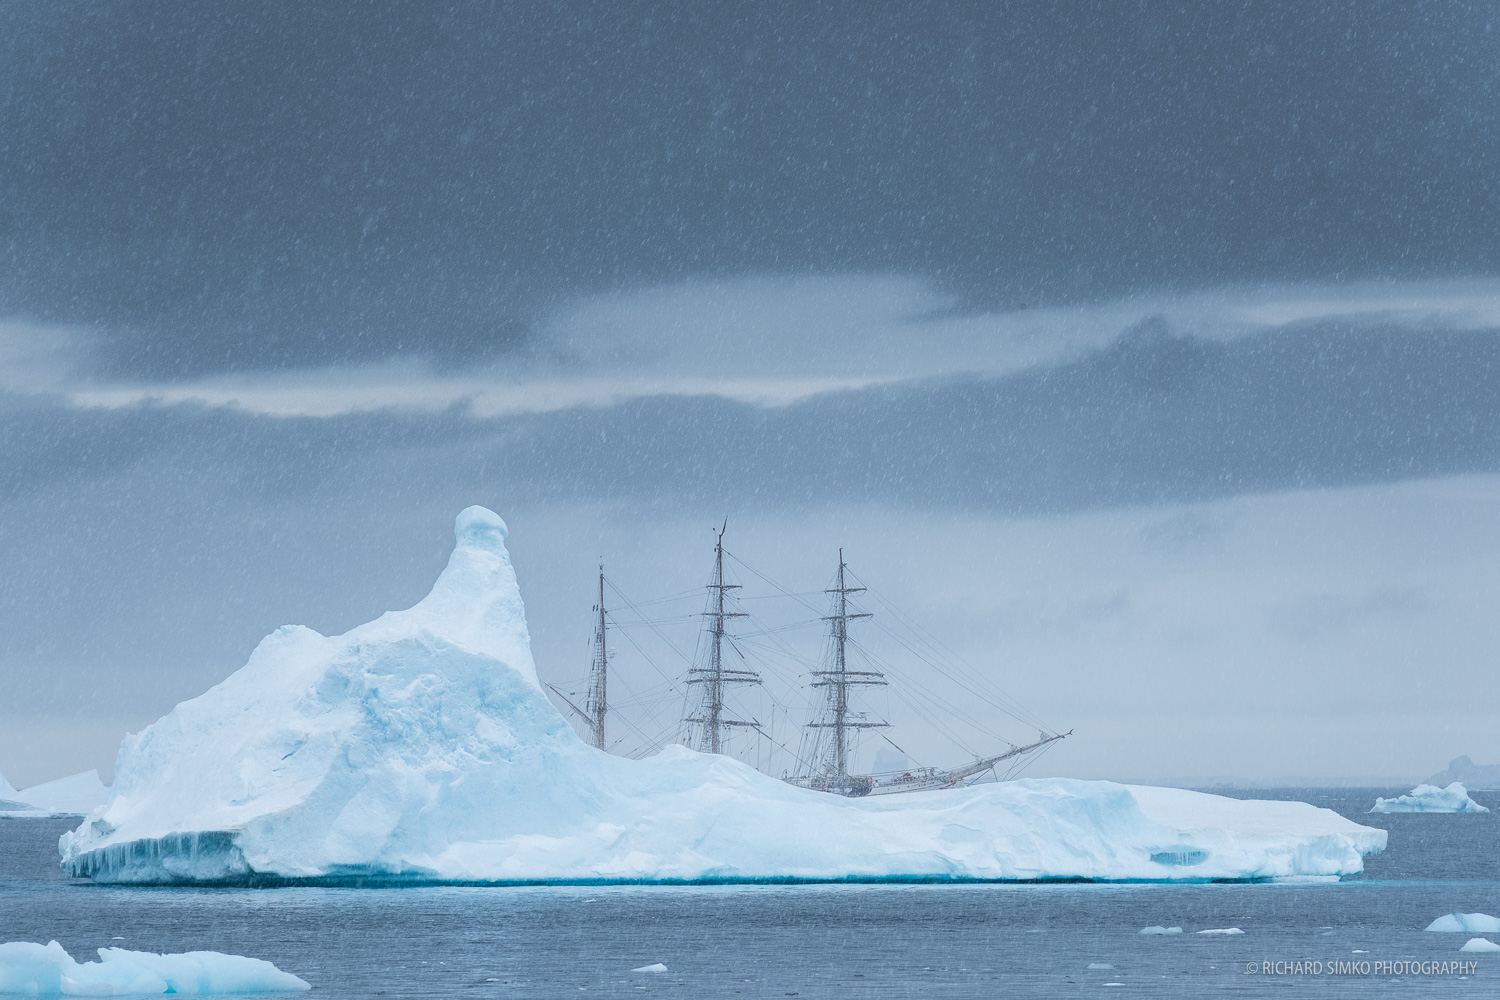 It is snowing, while Europa is drifting between the icebergs waiting for us that are ashore for landing activities.